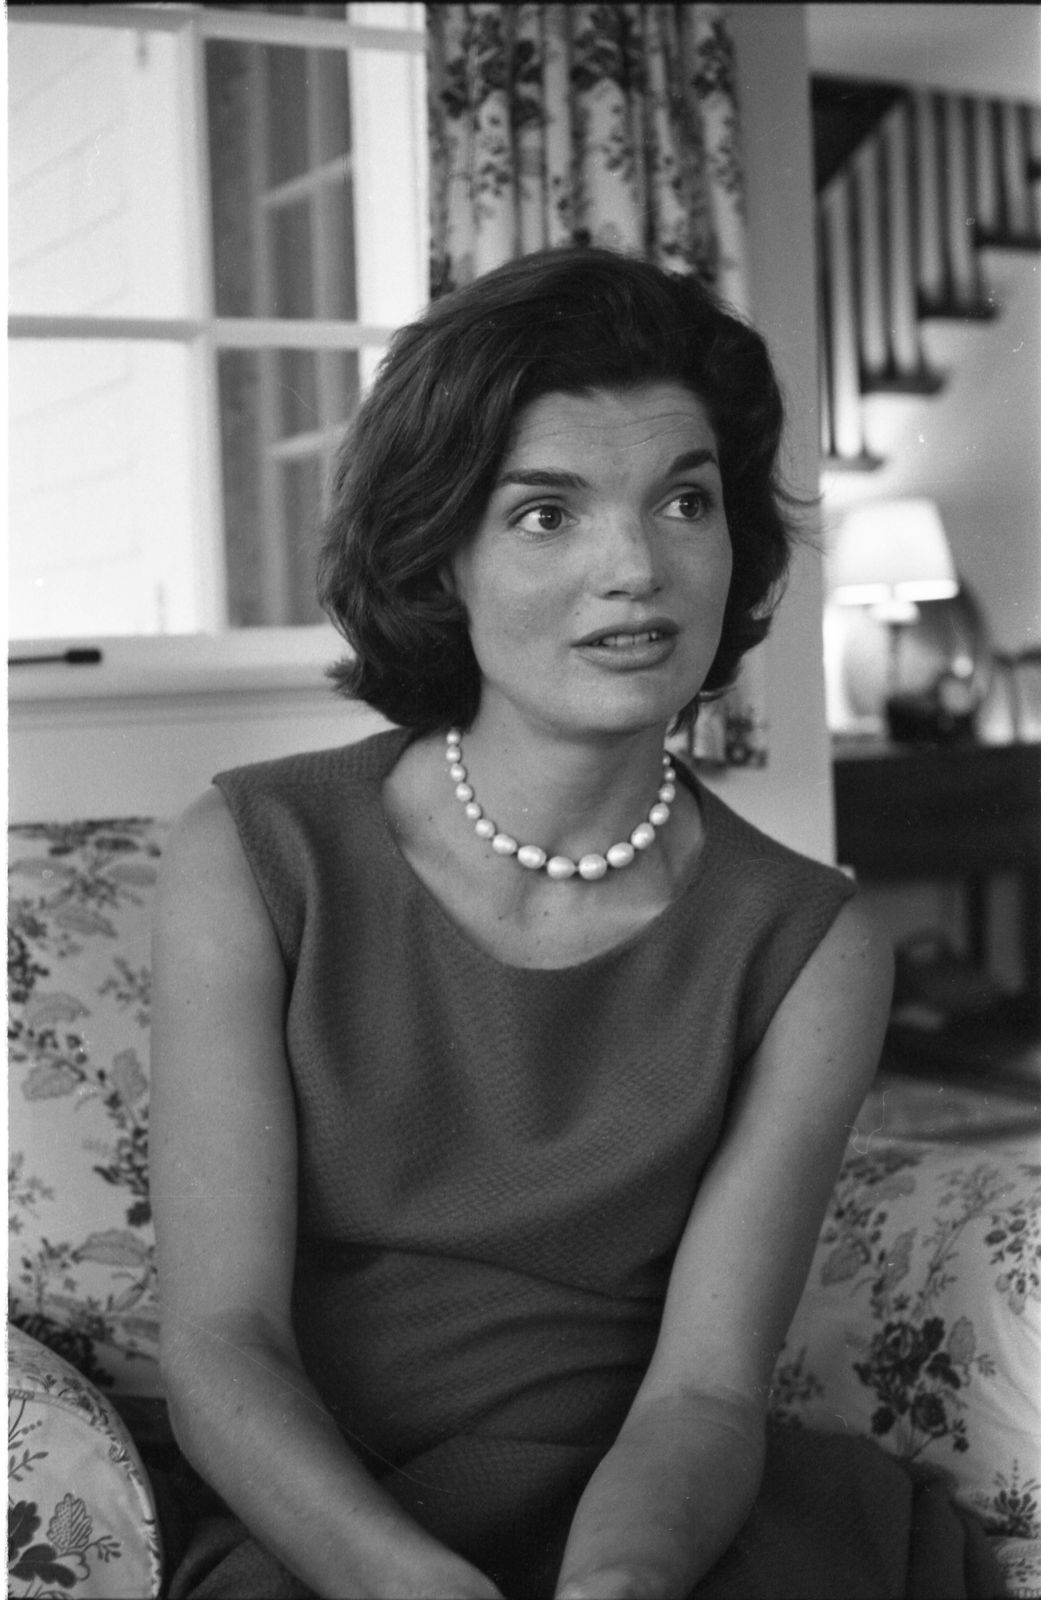 Jacqueline Kennedy as she sits in an armchair at home in Hyannisport, Massachusetts, 1960. | Photo: Getty Images.